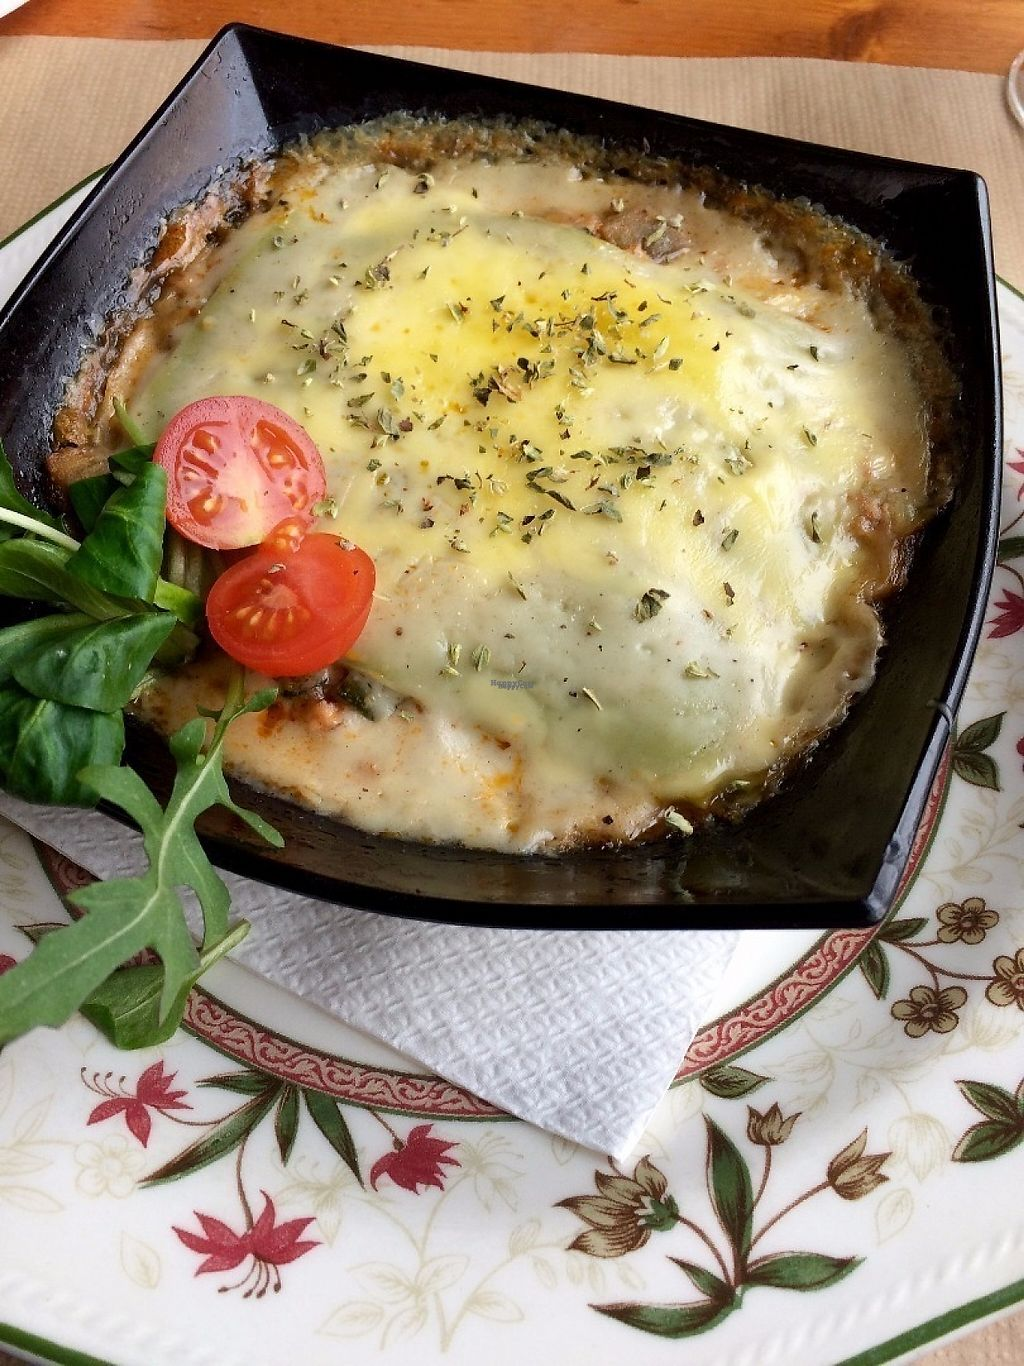 """Photo of Hicuri  by <a href=""""/members/profile/sophiecow"""">sophiecow</a> <br/>Vegan veggie lasagna <br/> February 25, 2017  - <a href='/contact/abuse/image/6894/230235'>Report</a>"""